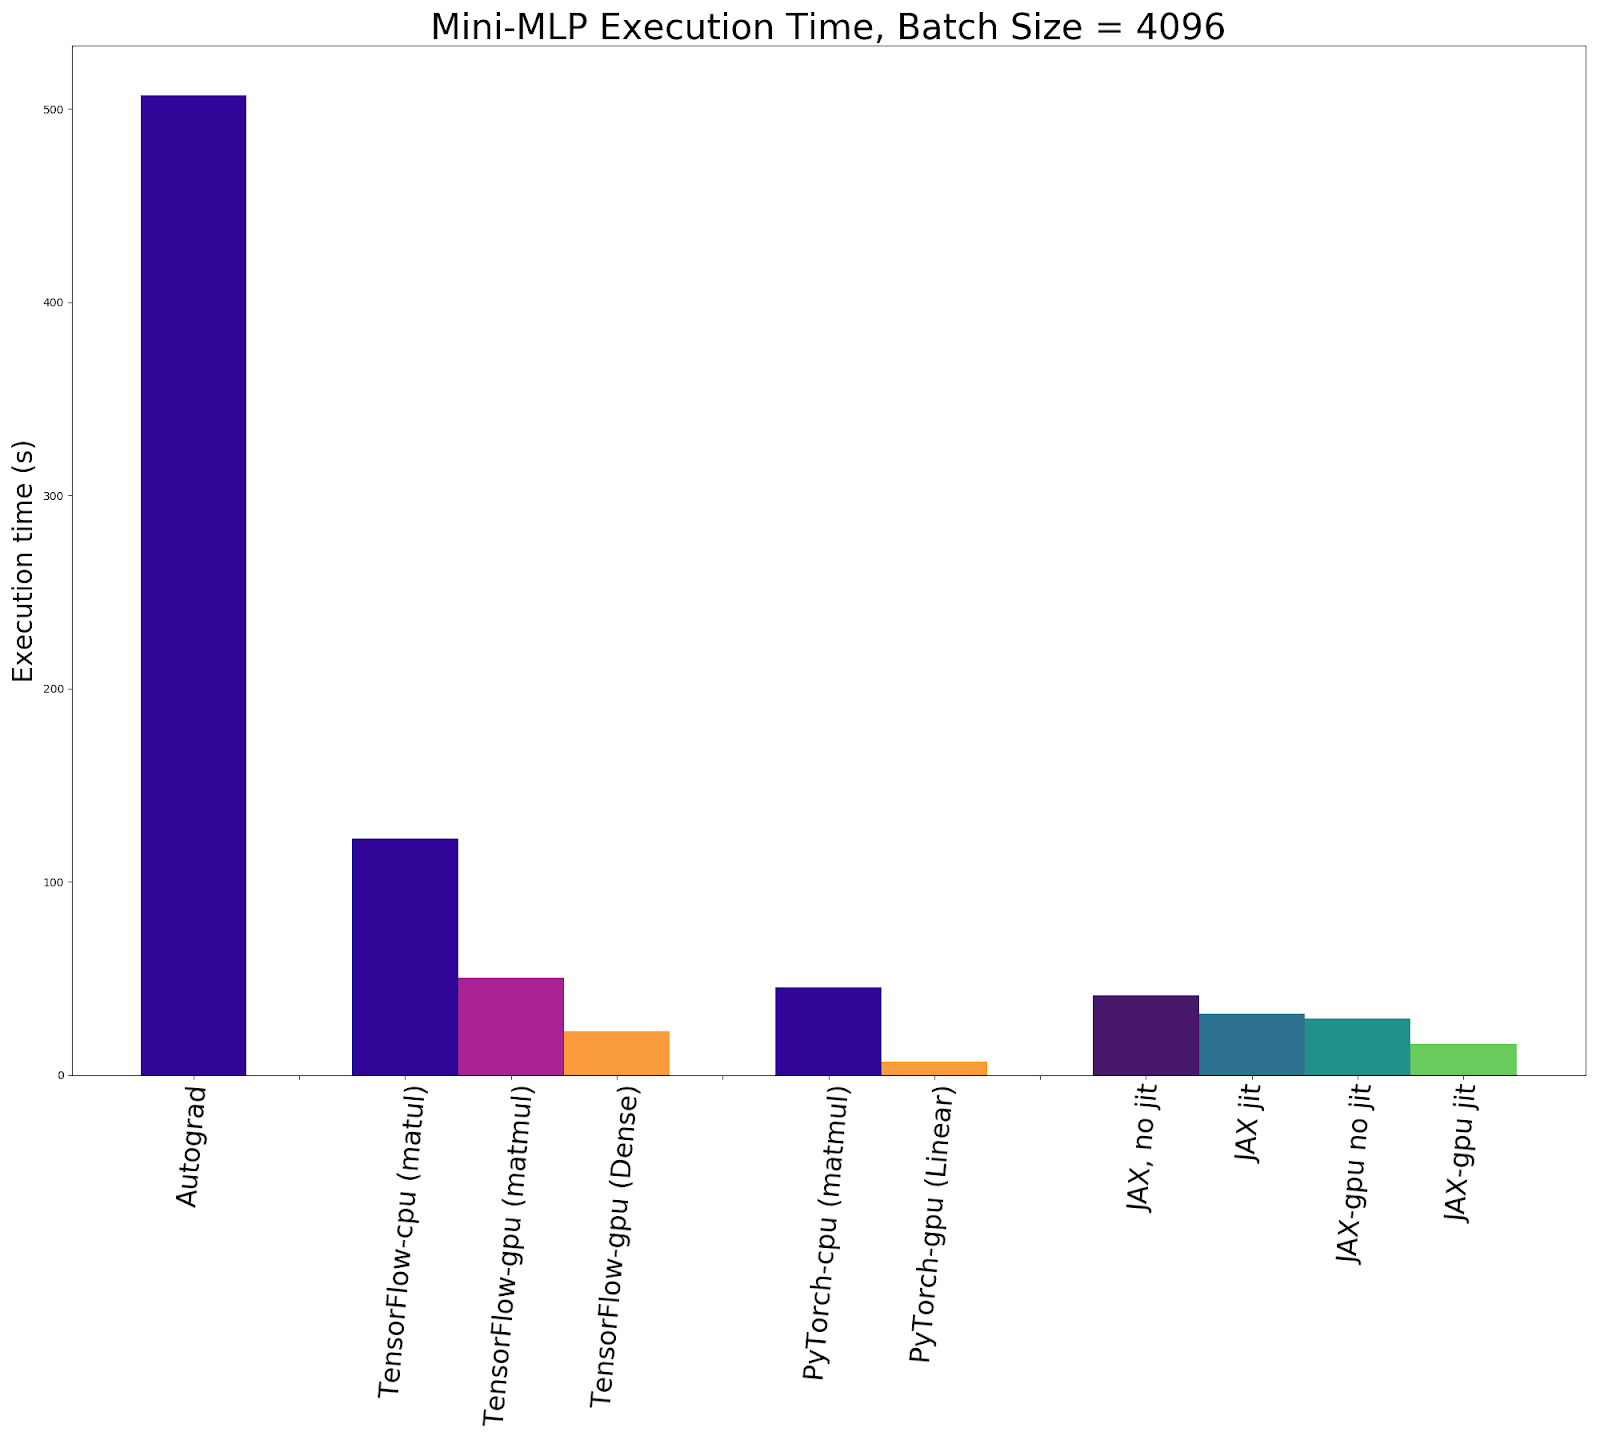 Execution times for 10,000 updates with a batch size of 4096